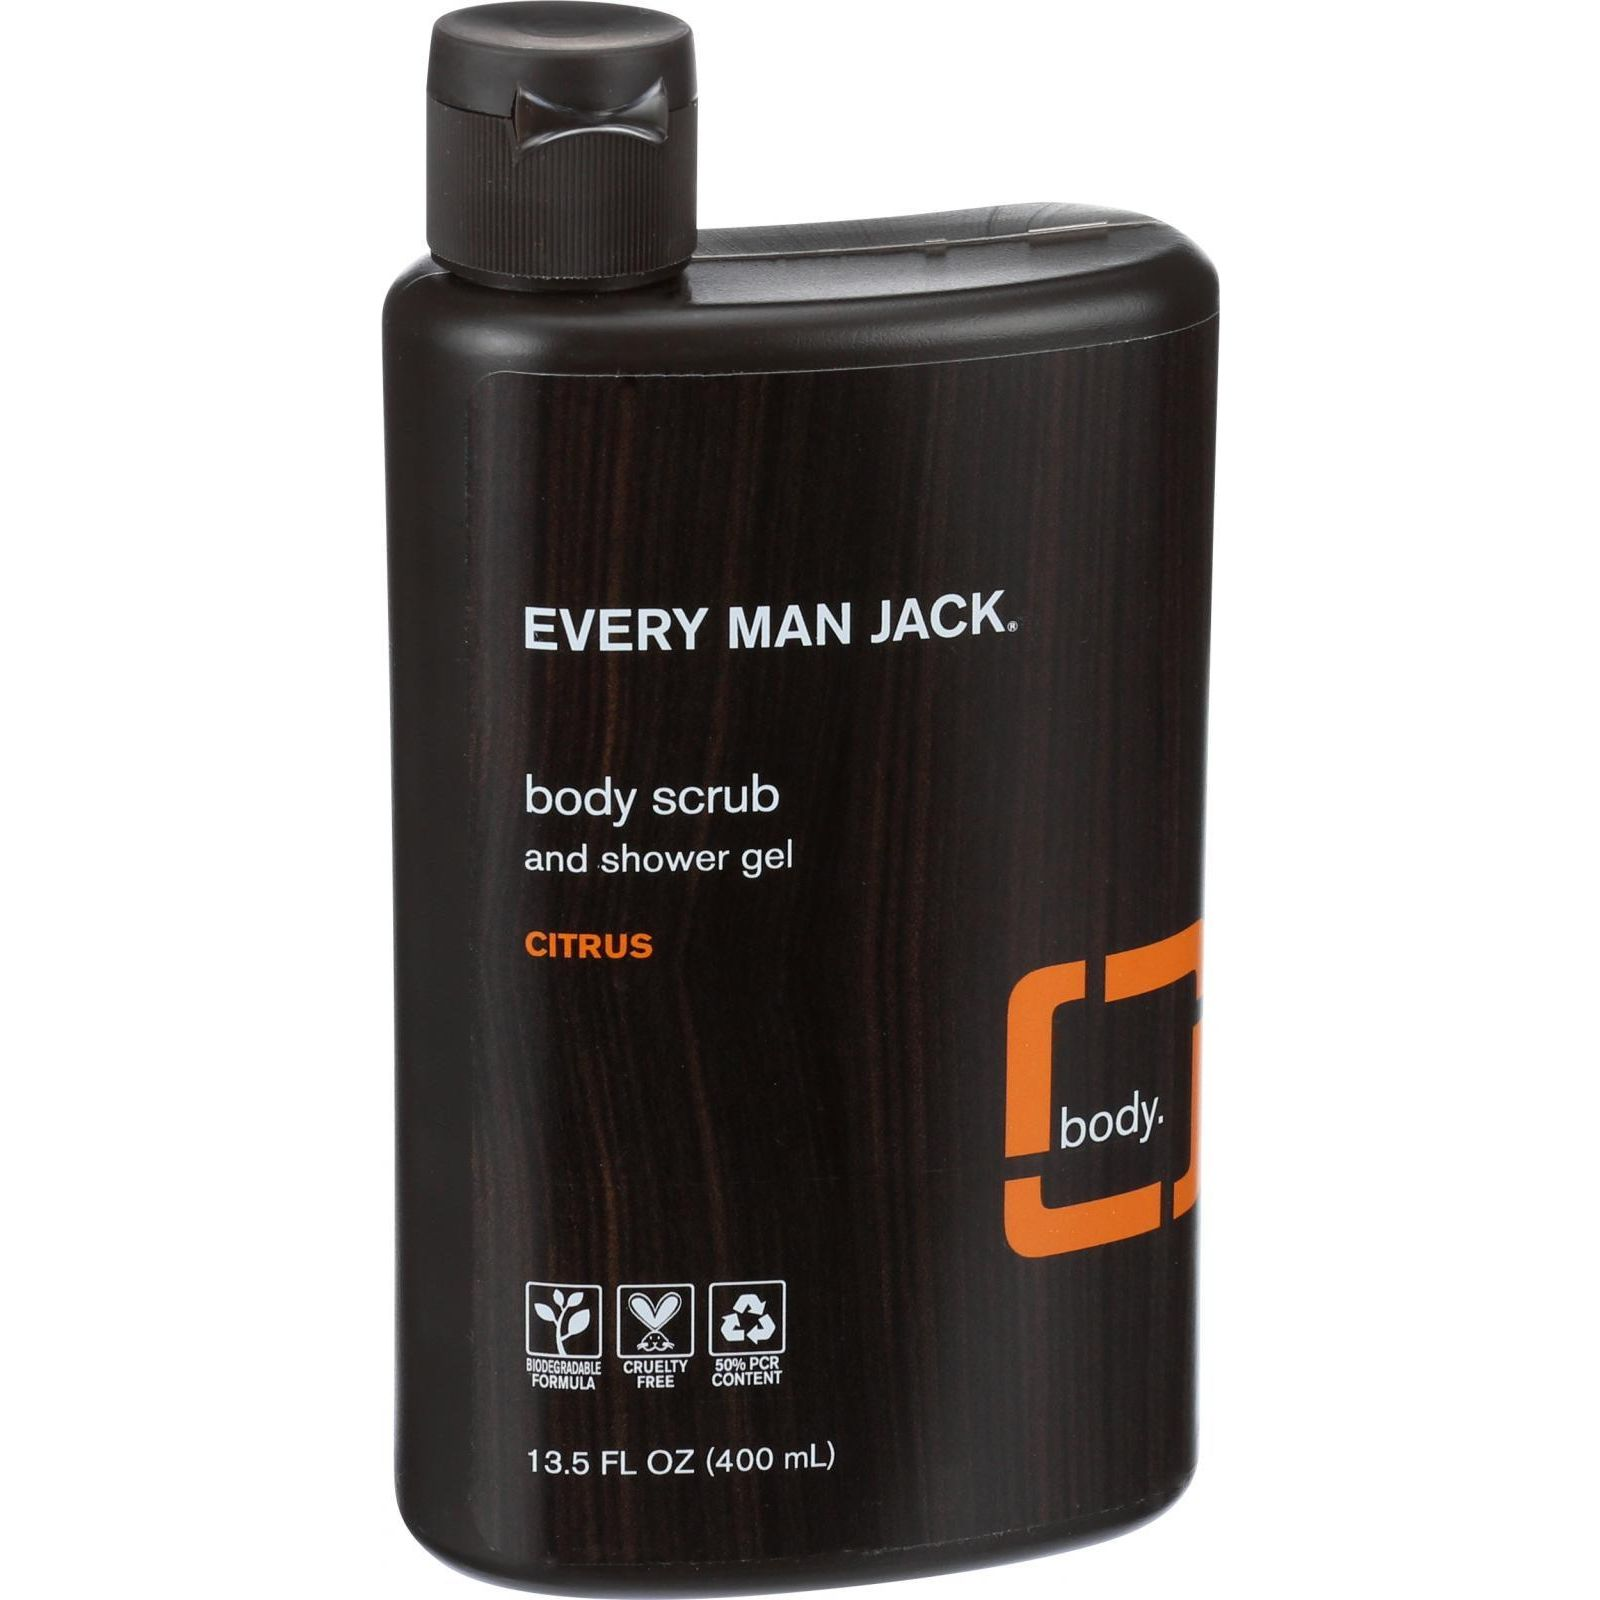 Every Man Jack Body Wash  Citrus Scrub  13.5 oz